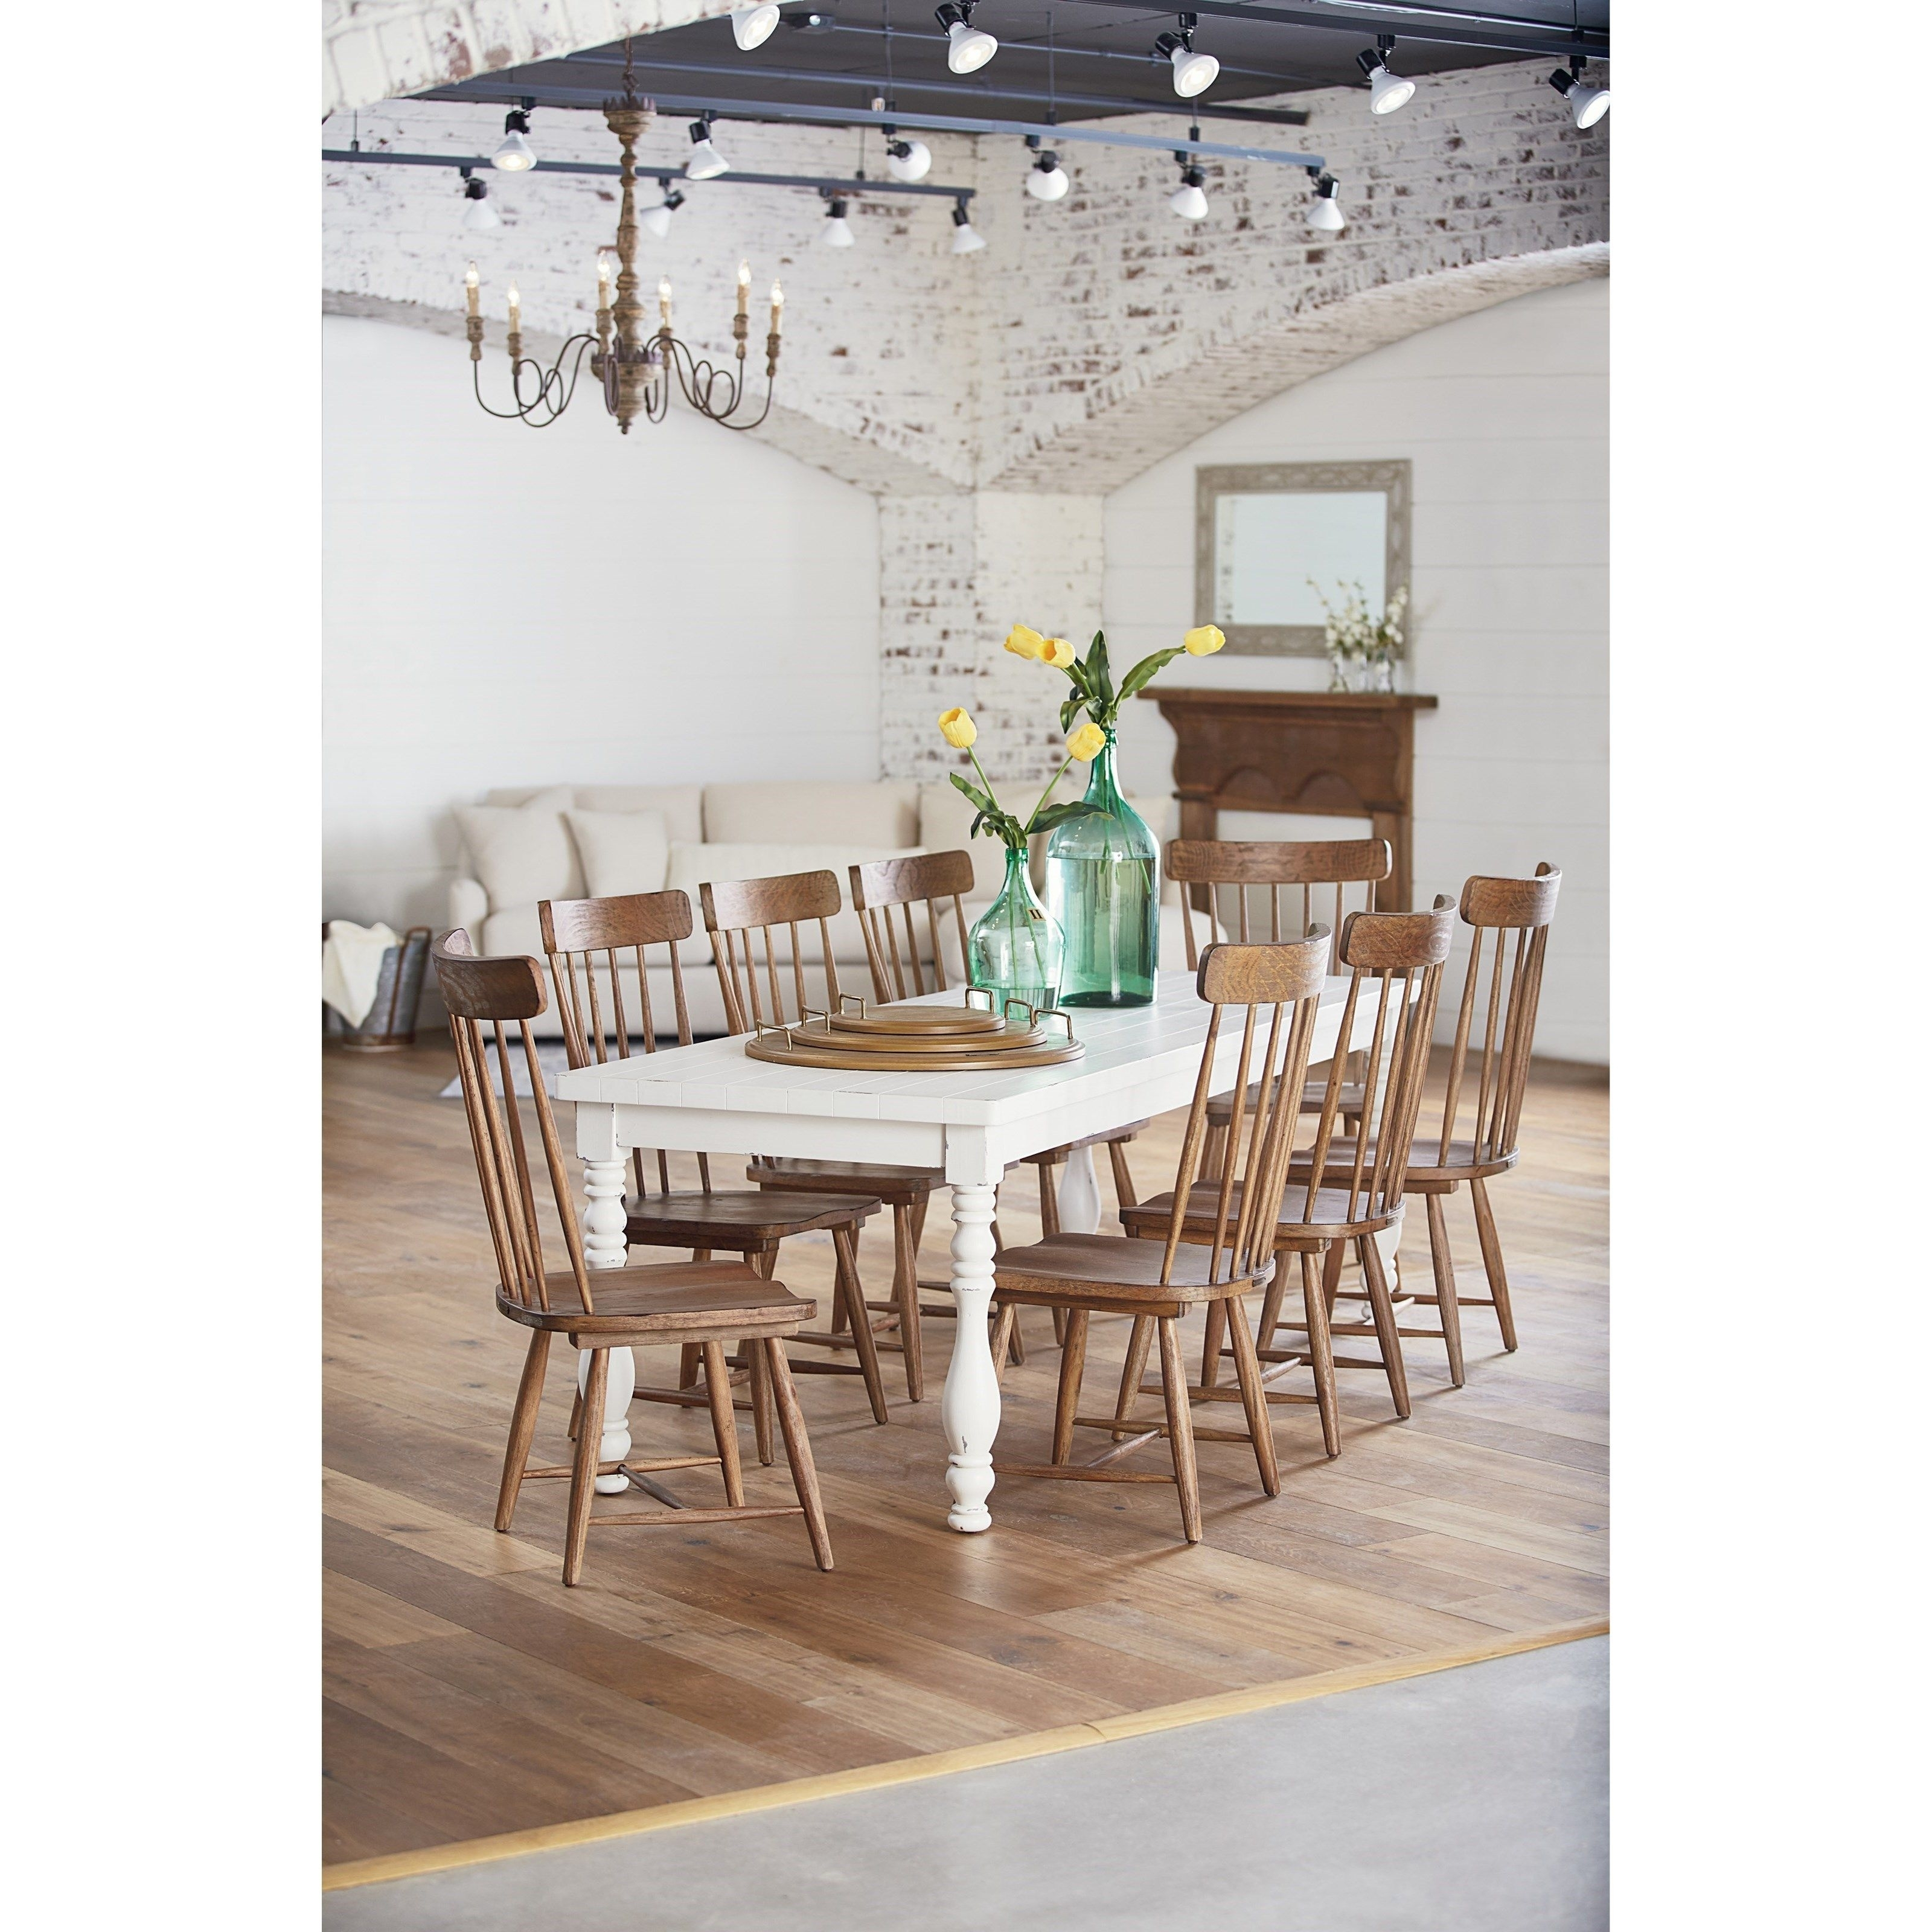 9 Piece Dining Setmagnolia Home (View 1 of 20)